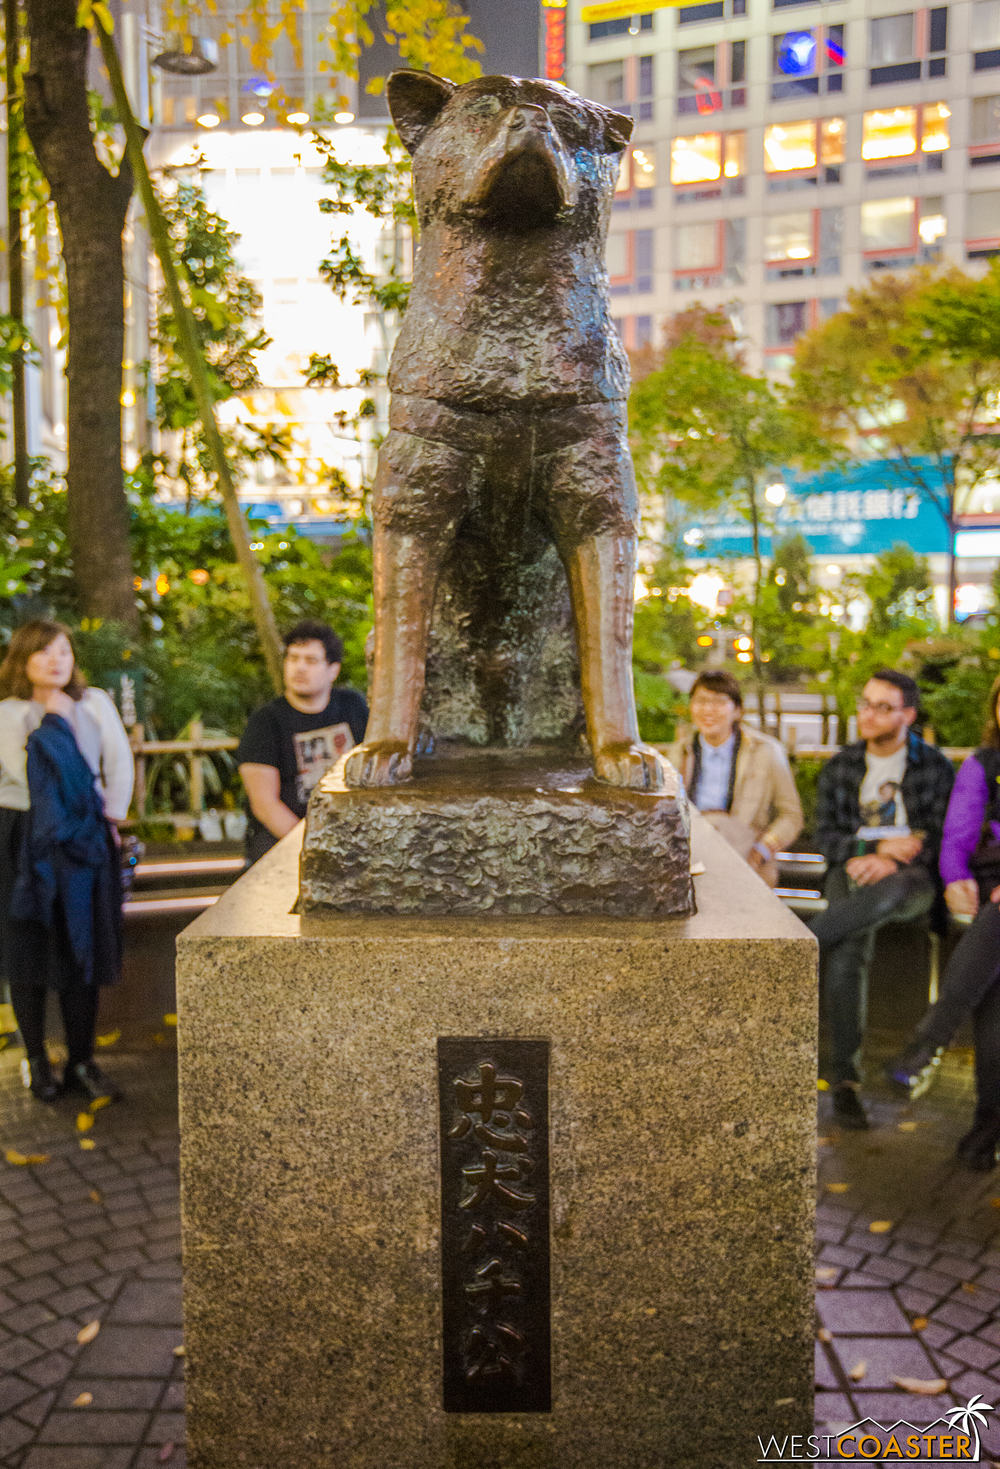 Right adjacent to Shibuya Crossing is the famous statue of Hachiko, the legendarily loyal dog famous for waiting for years at the train station for his owner to return, even though his owner had passed away during the train trip.